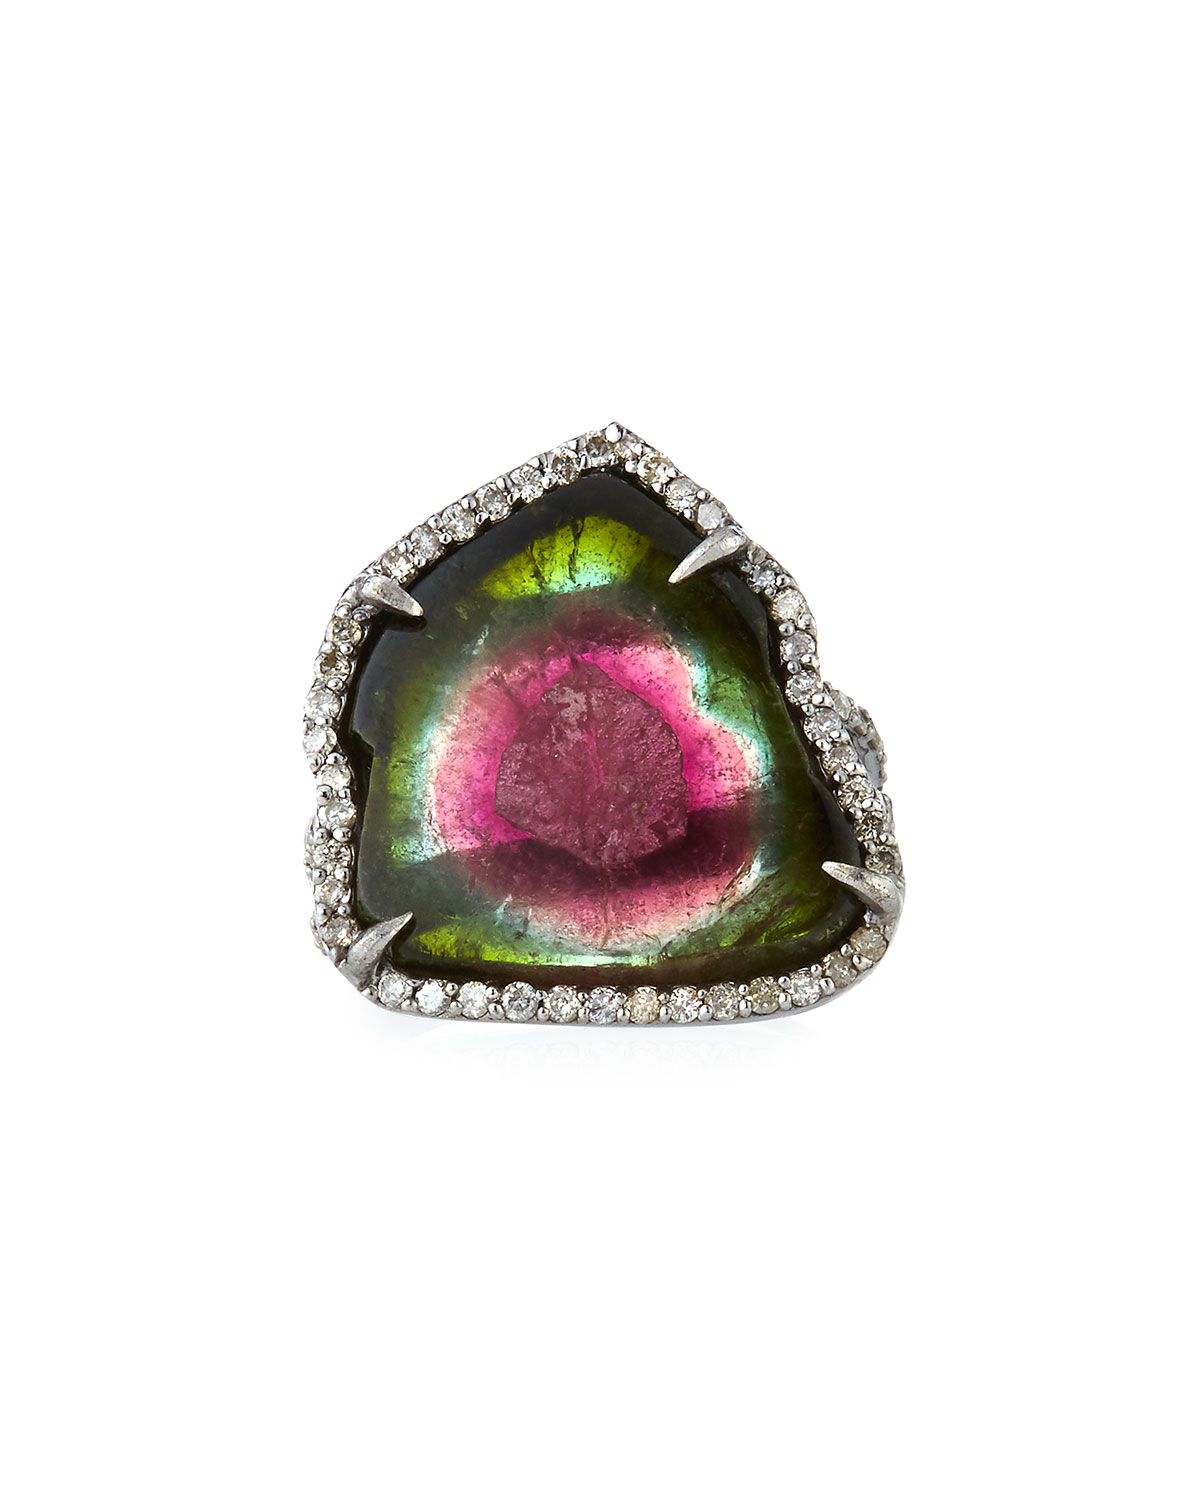 Watermelon Tourmaline Ring, Size 7.5